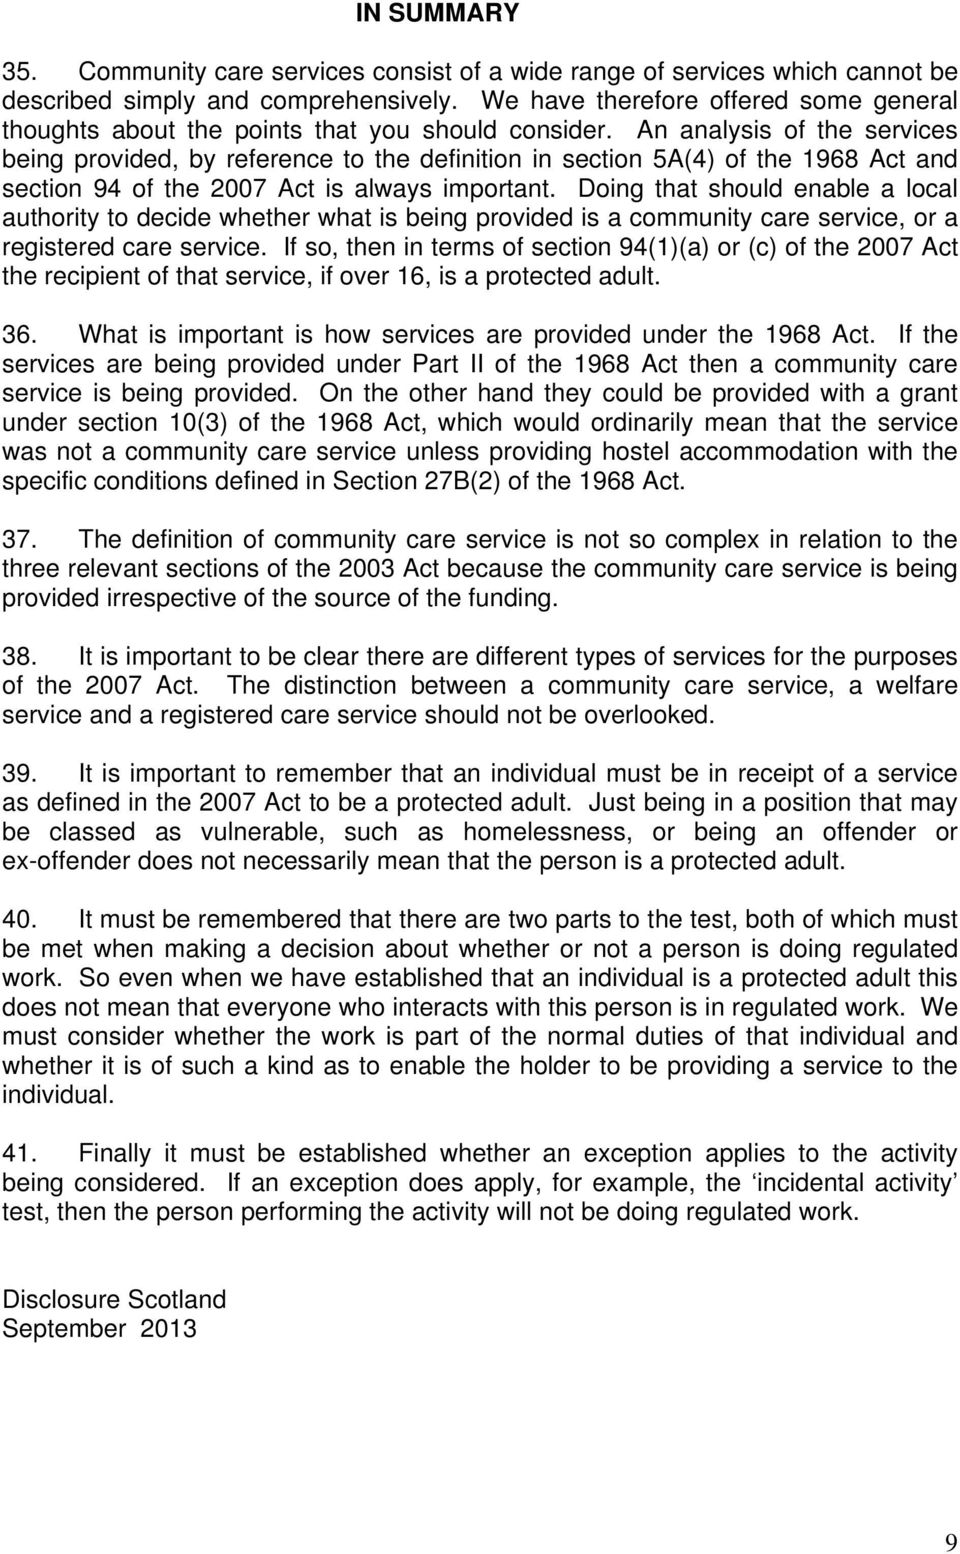 An analysis of the services being provided, by reference to the definition in section 5A(4) of the 1968 Act and section 94 of the 2007 Act is always important.